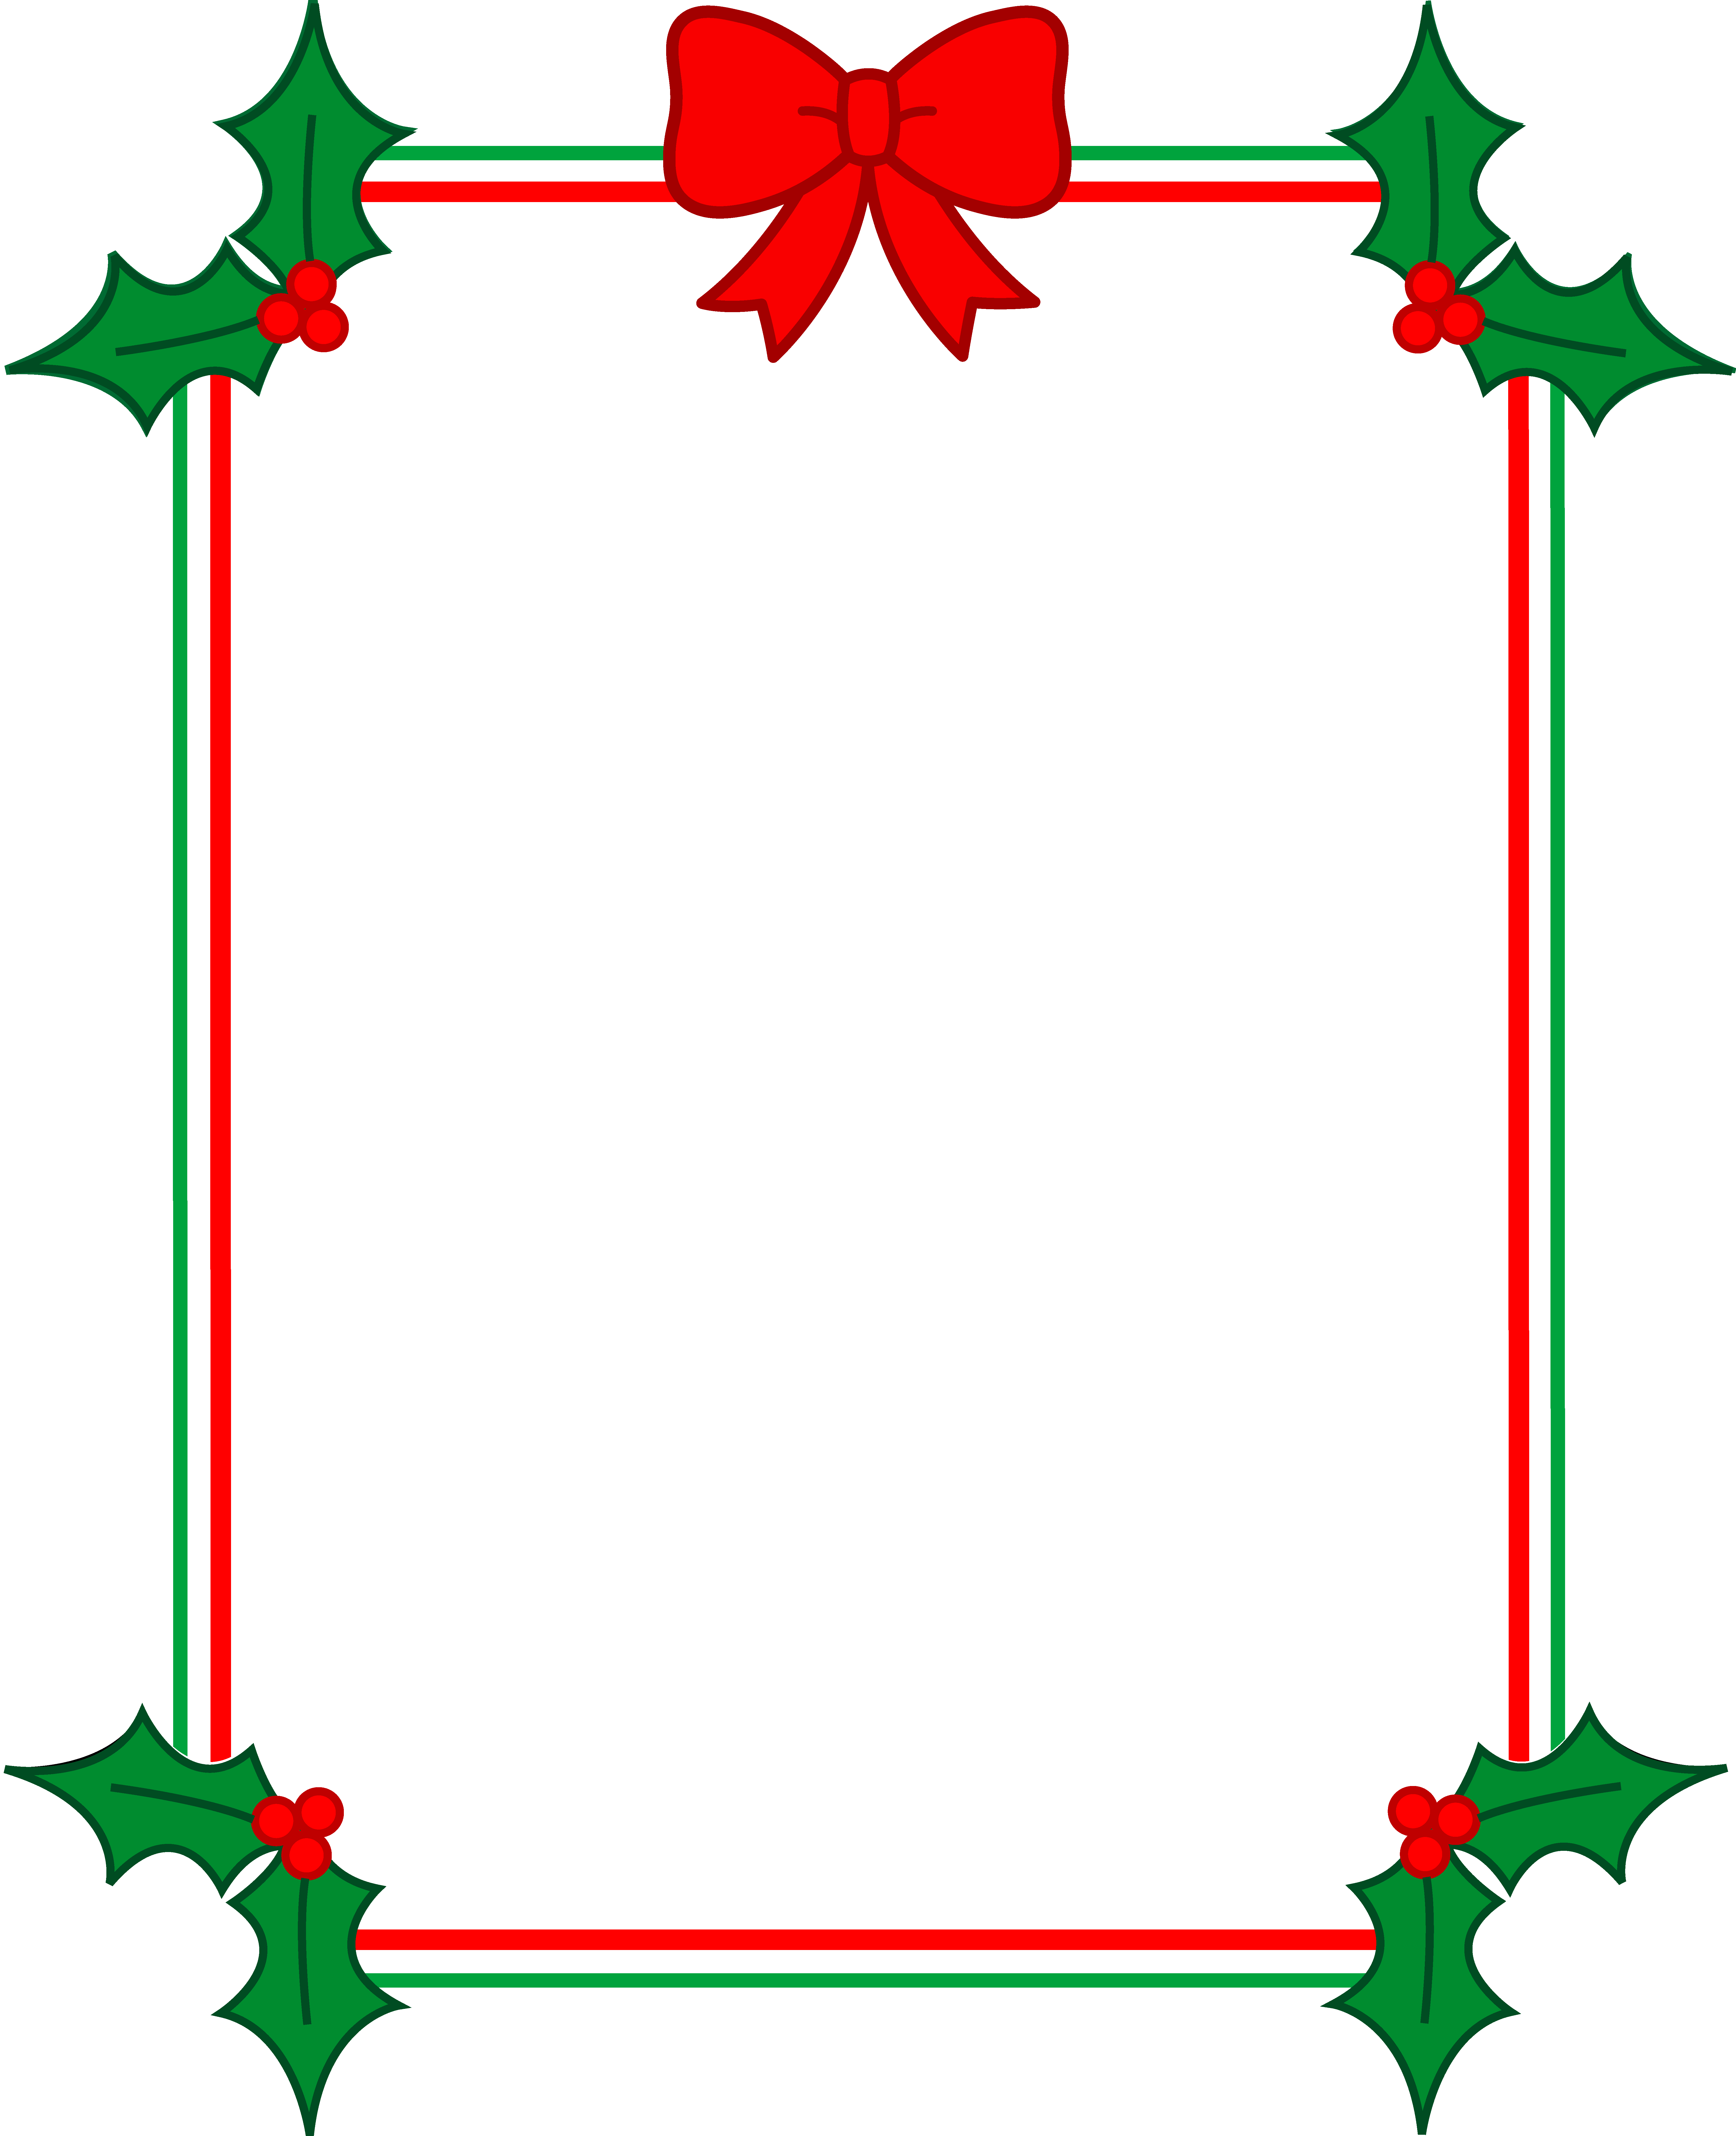 7018x8636 Christmas Holly Border Picture Transparent